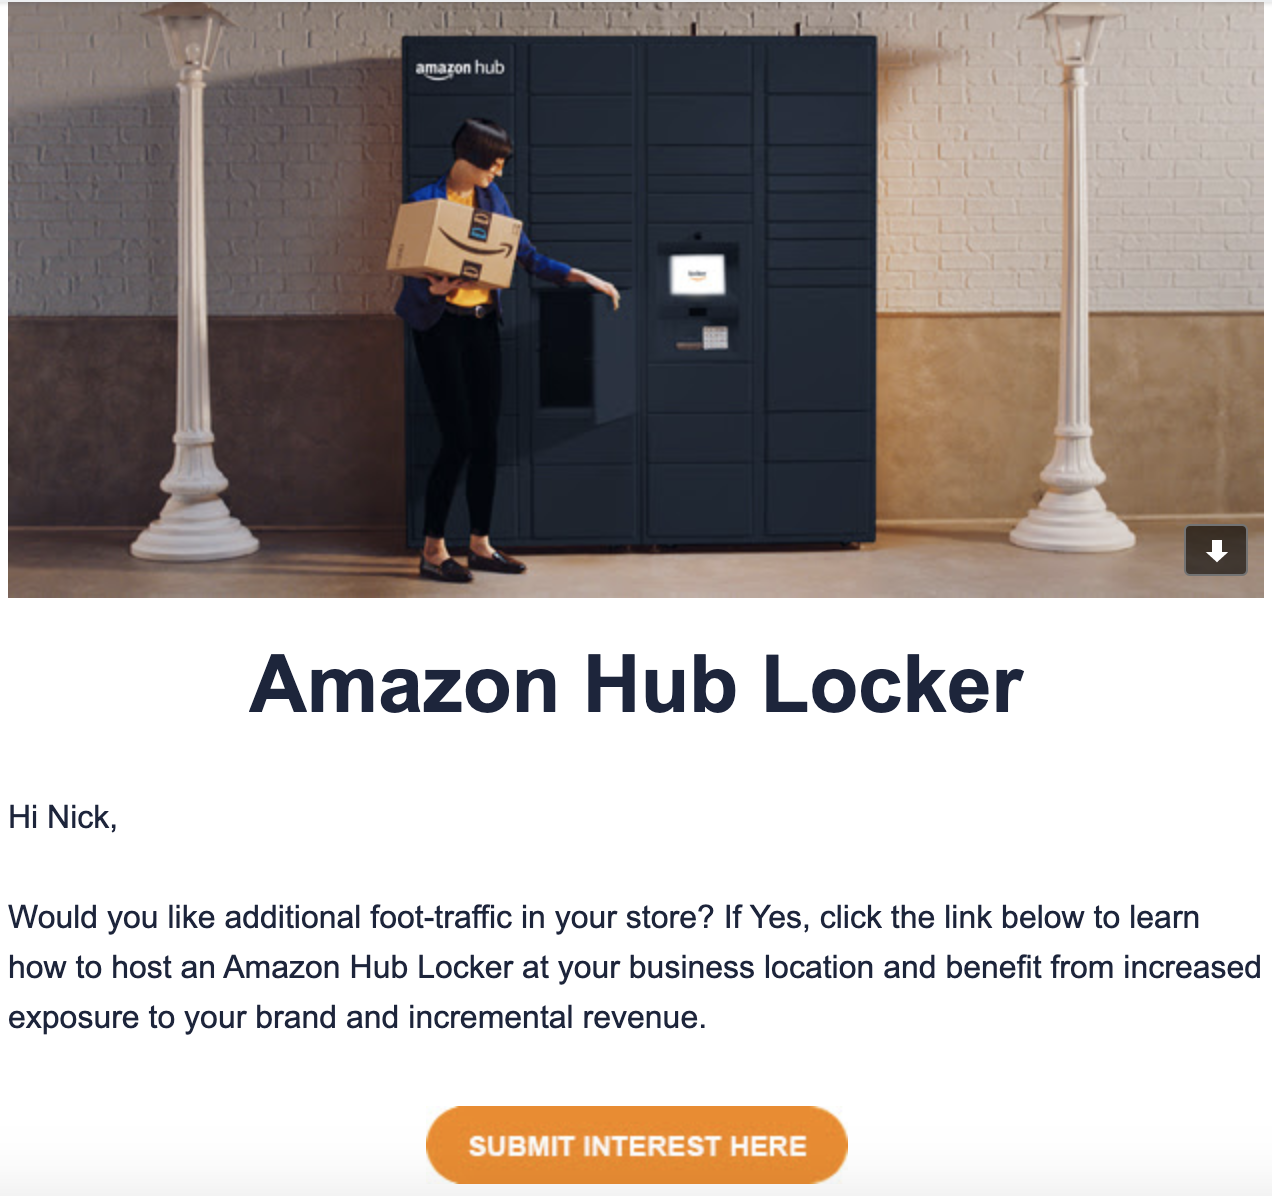 Amazon Hub Locker Promotion